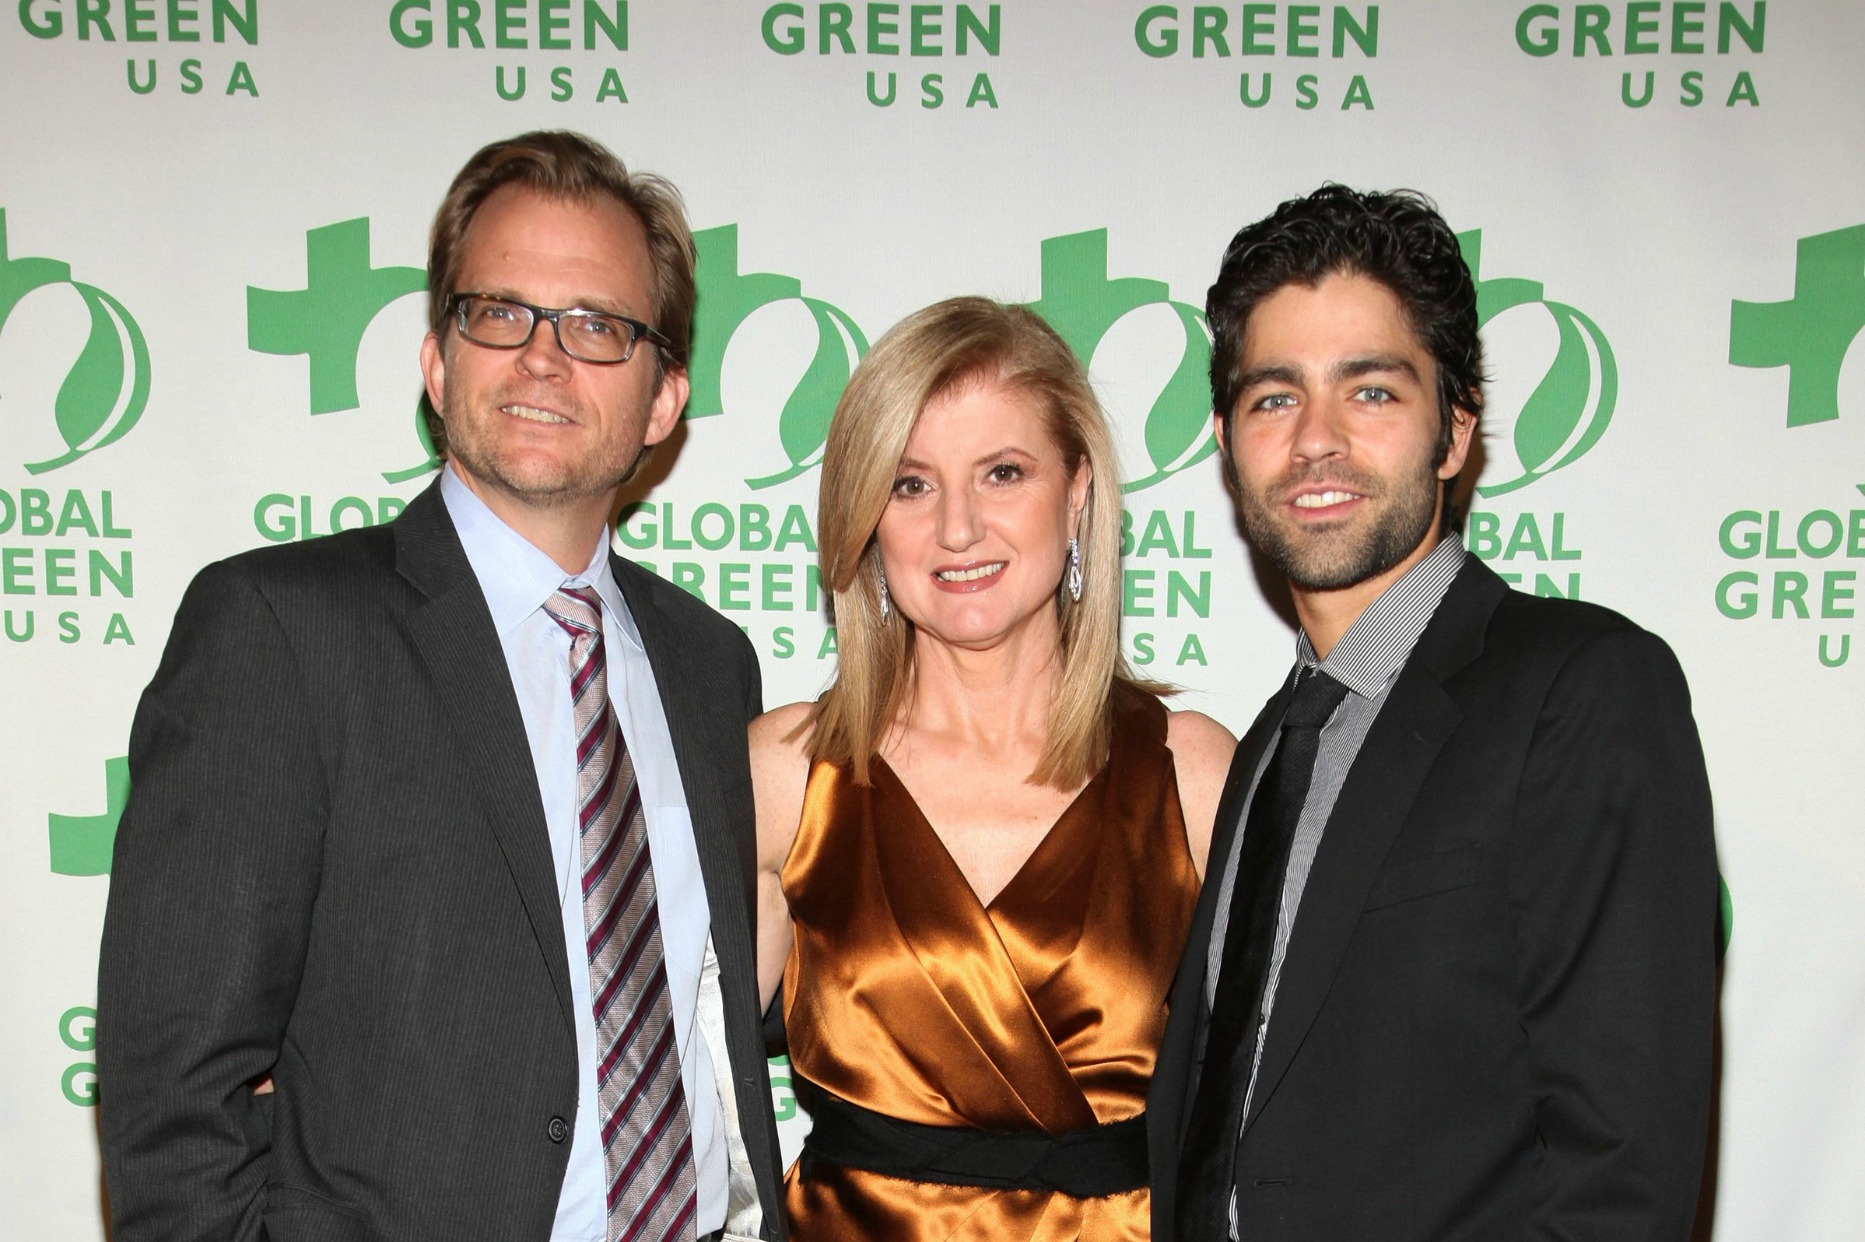 Global Green's Matt Petersen with Arianna Huffington and Adrian Grenier at the 2010 Sustainable Design Awards..